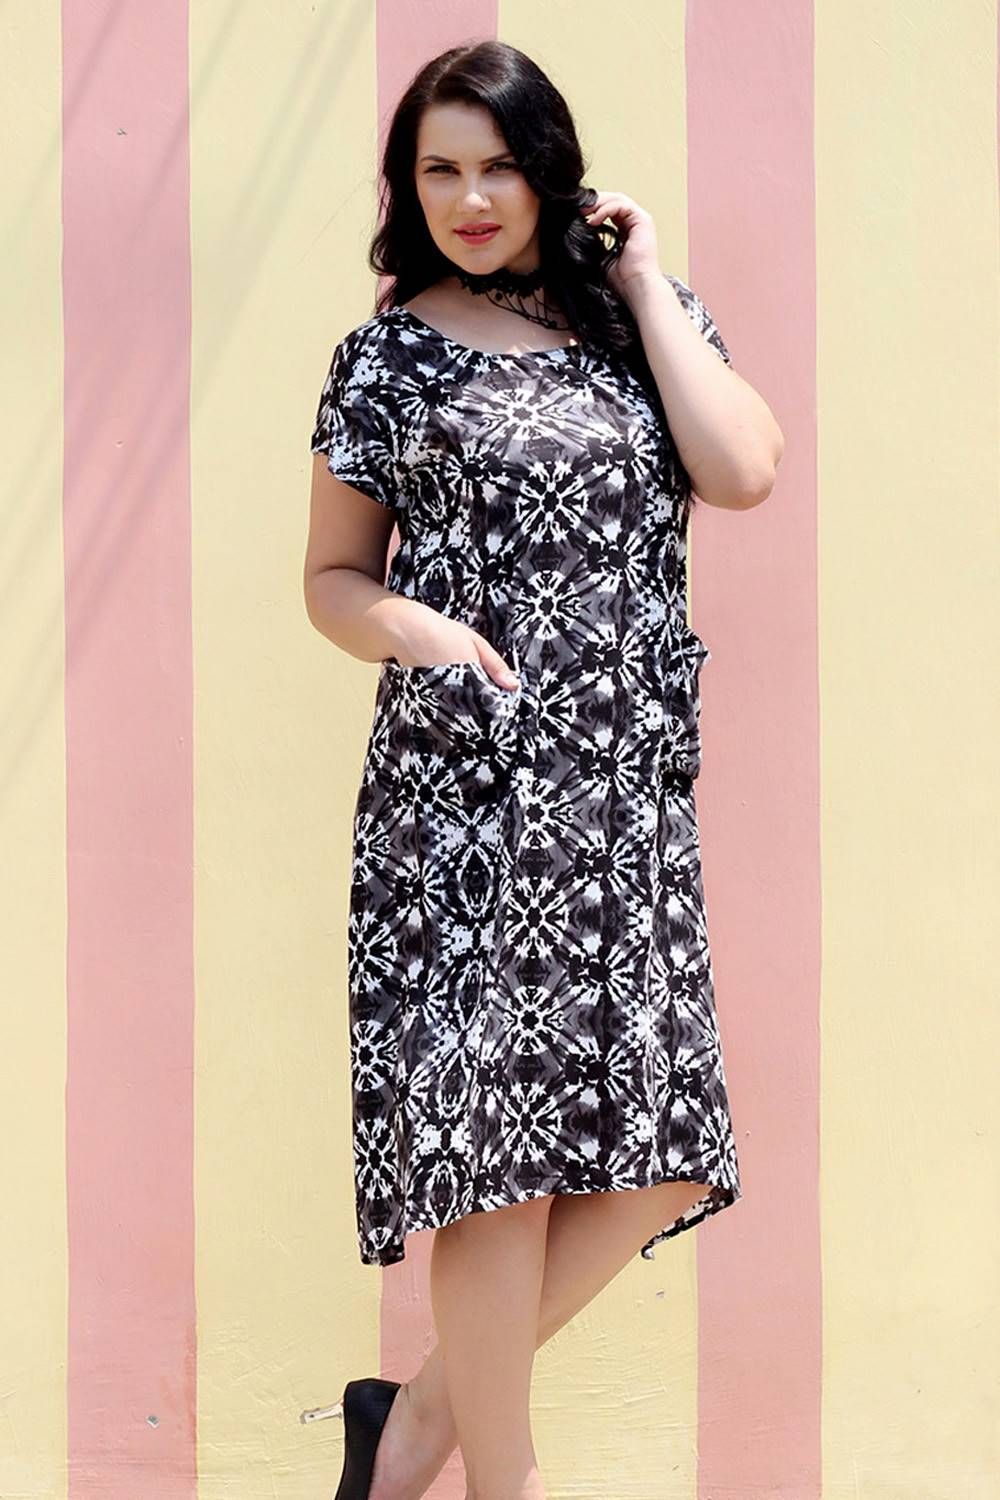 plus_size_monochrome_freestyle_dress_lastinch_western_clothing_brand